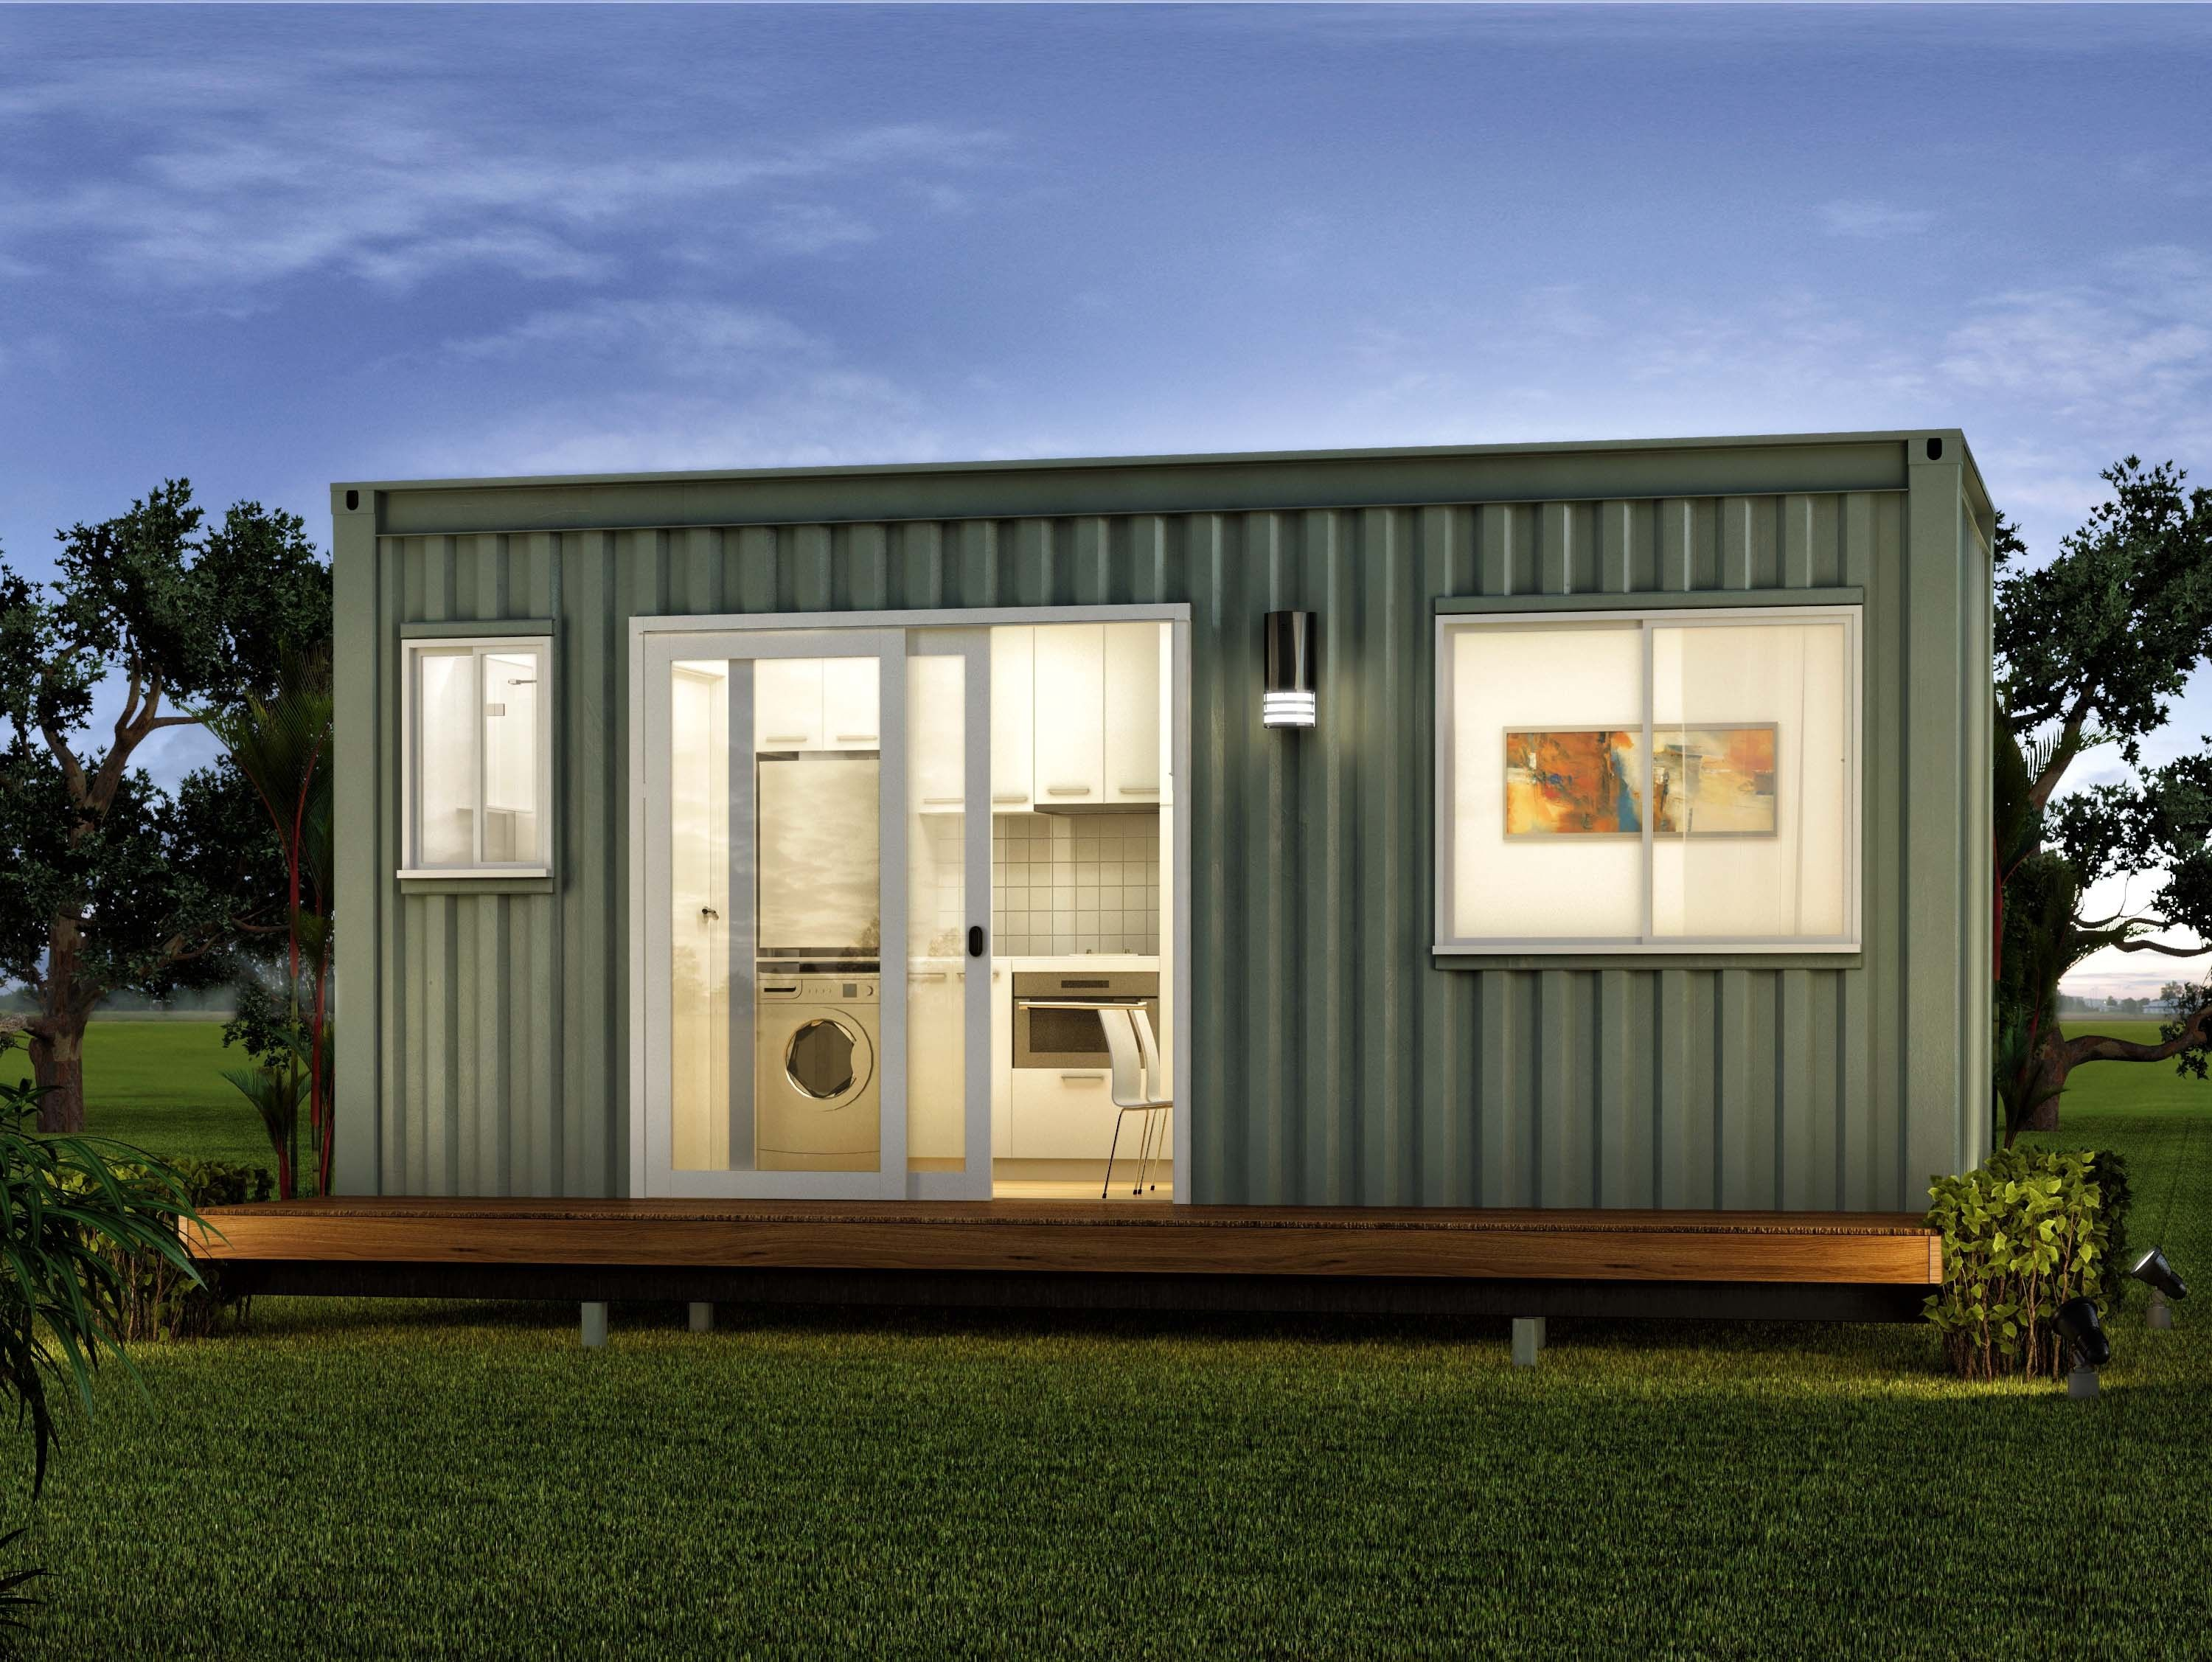 328 best shipping container homes images on pinterest | shipping